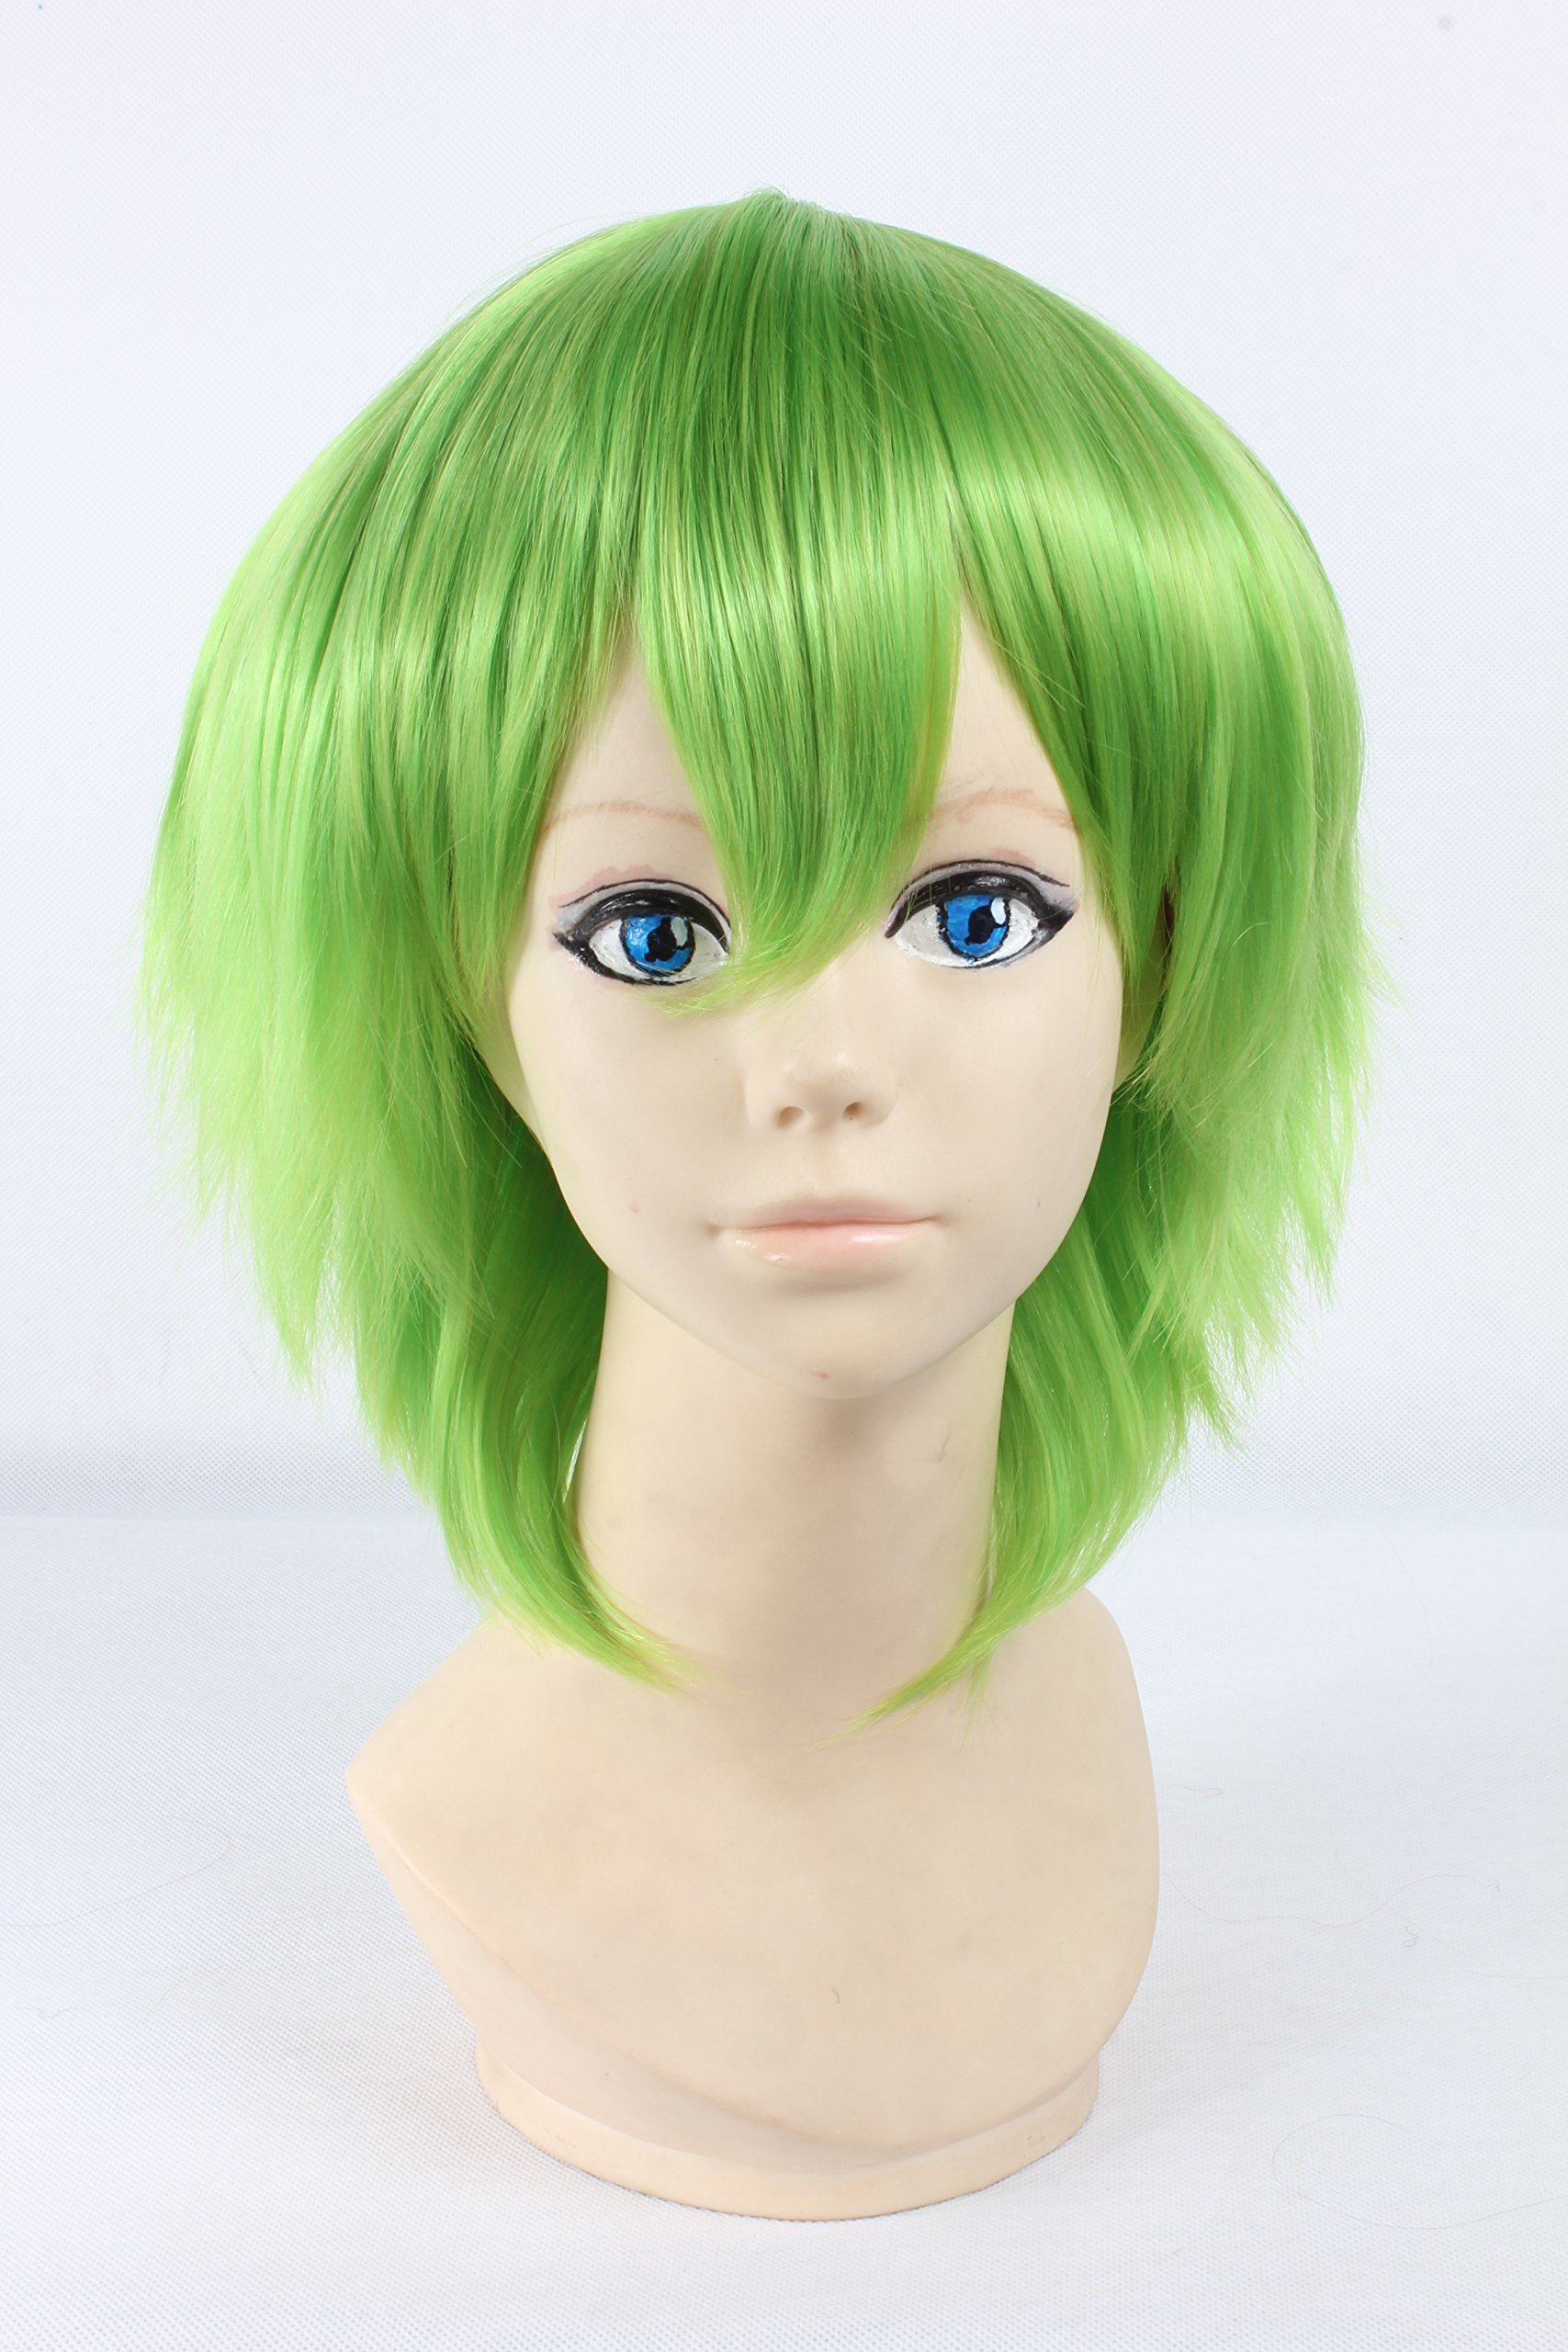 Coolsky Wigs Cosplay Lace Front Short Green Wig Costume Wig